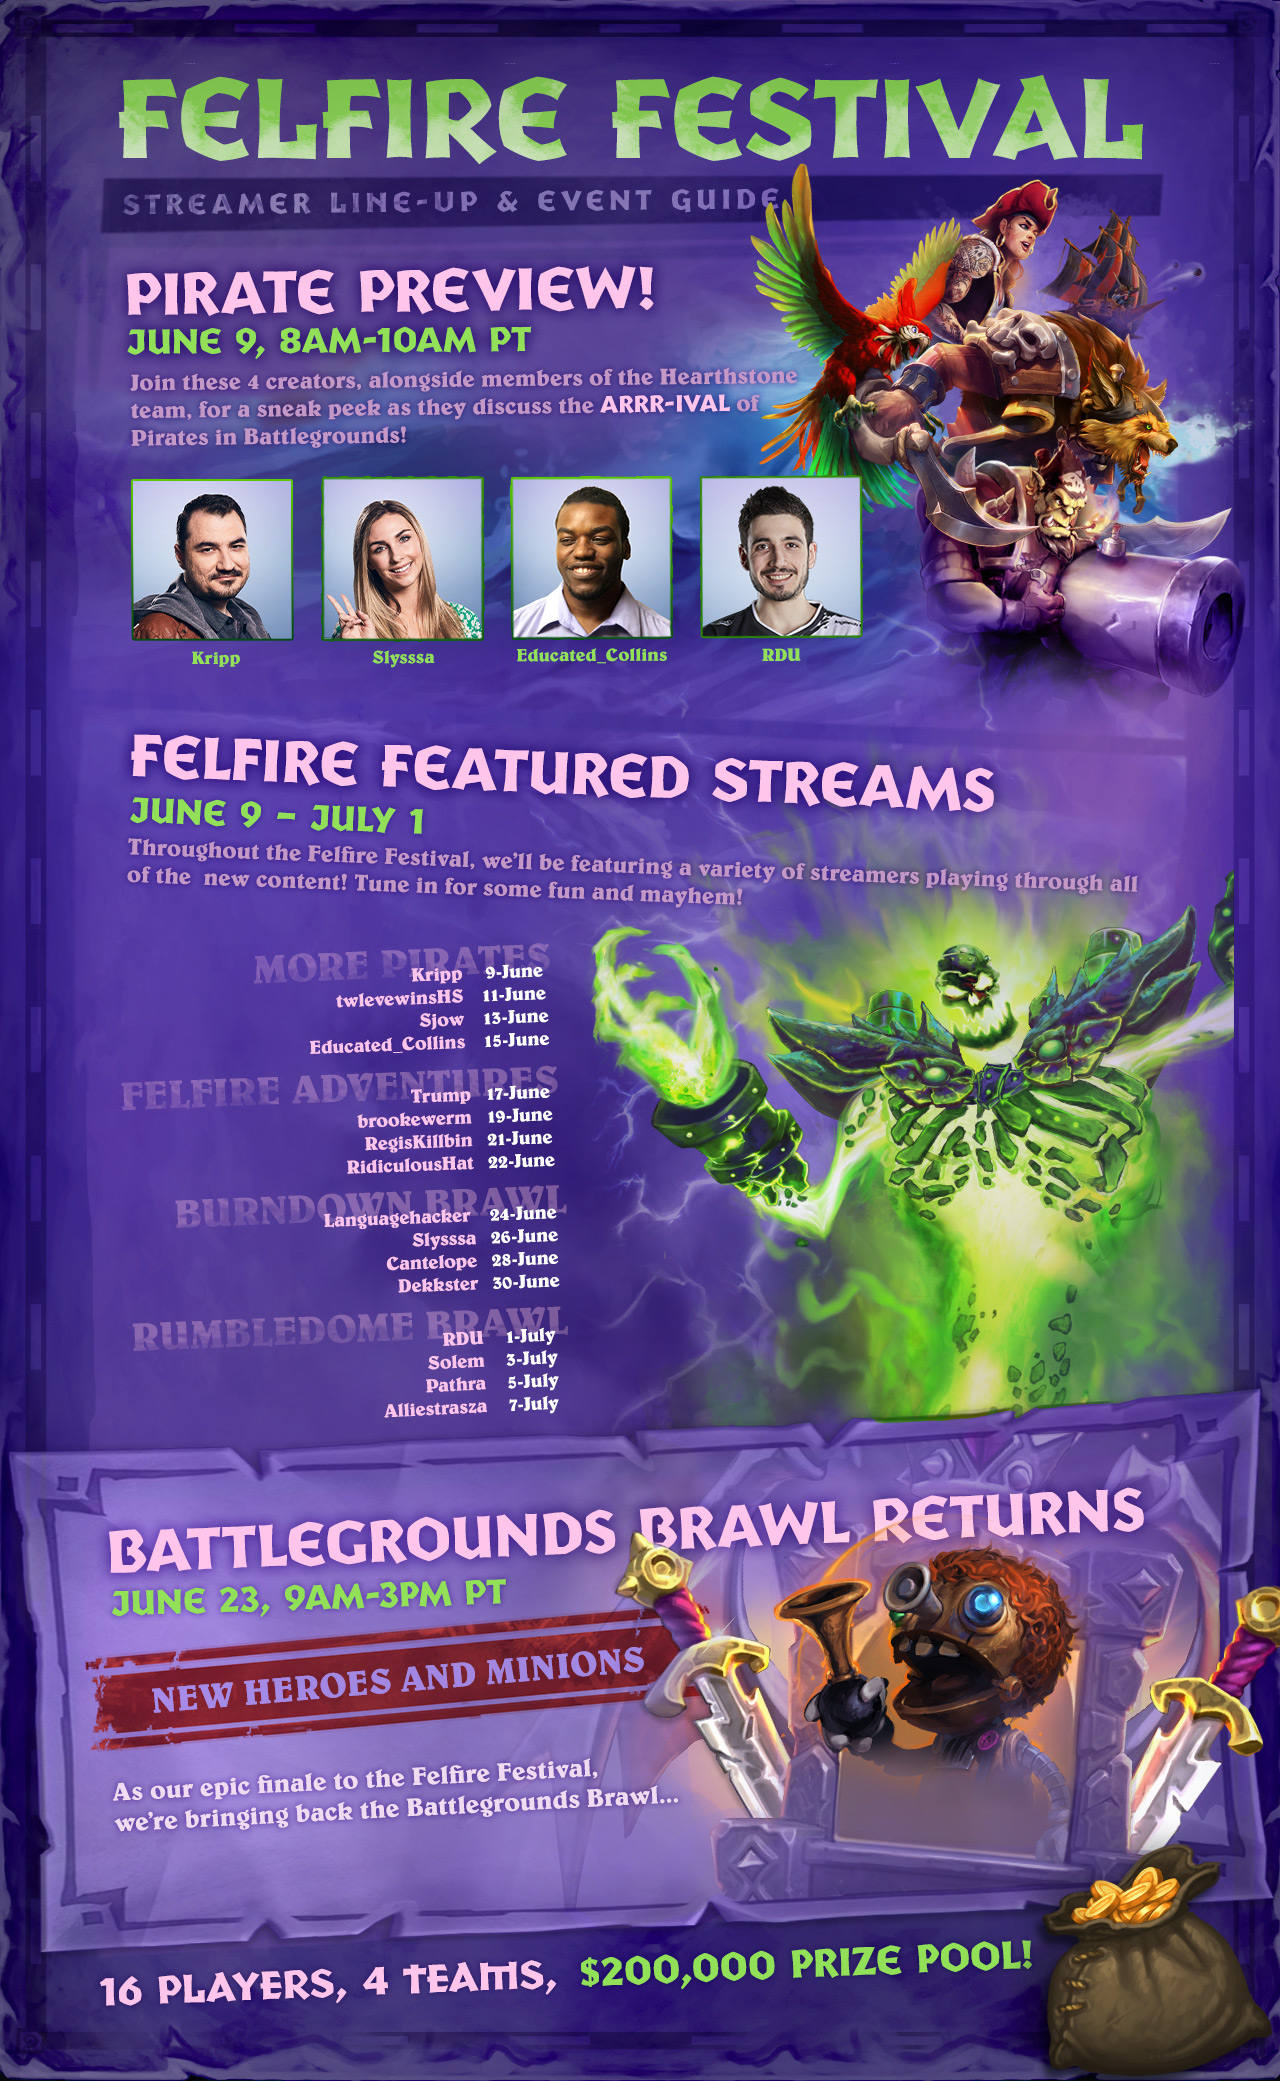 Felfire Festival Event Flyer, detailed below.